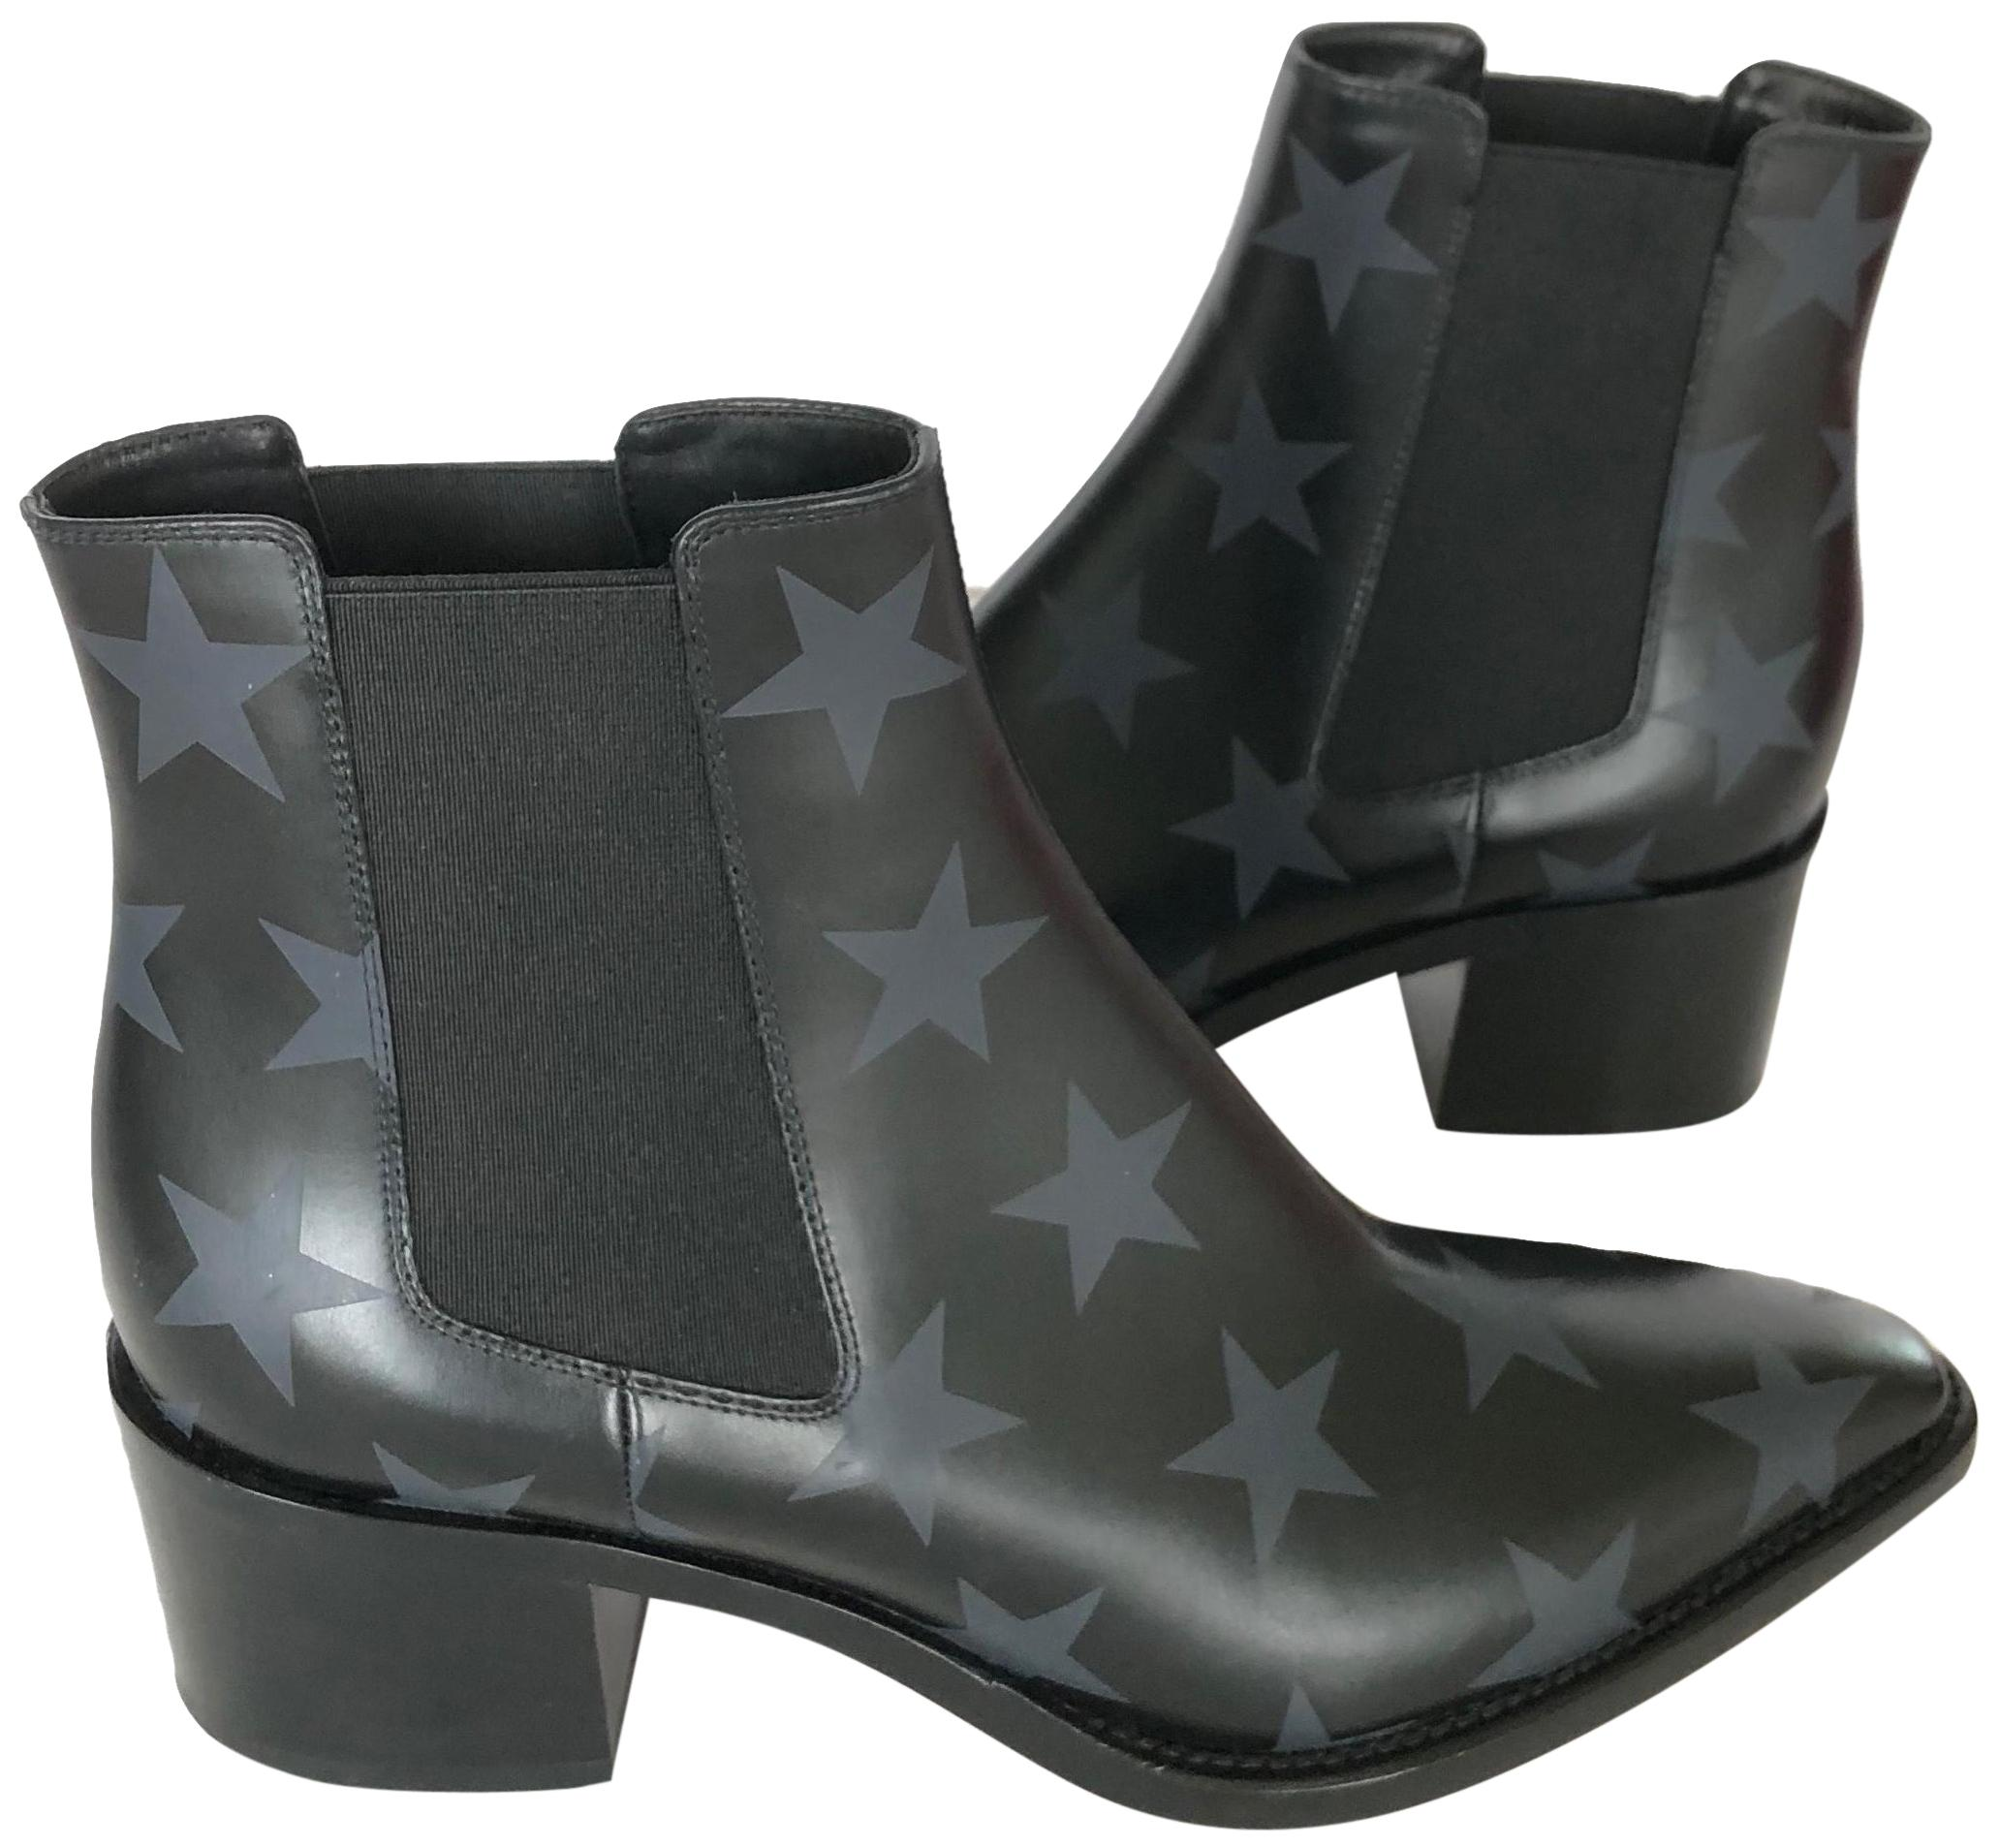 Valentino Black & Blue Hologram Star Chelsea Leather Boots/Booties Size EU 36.5 (Approx. US 6.5) Regular (M, B)